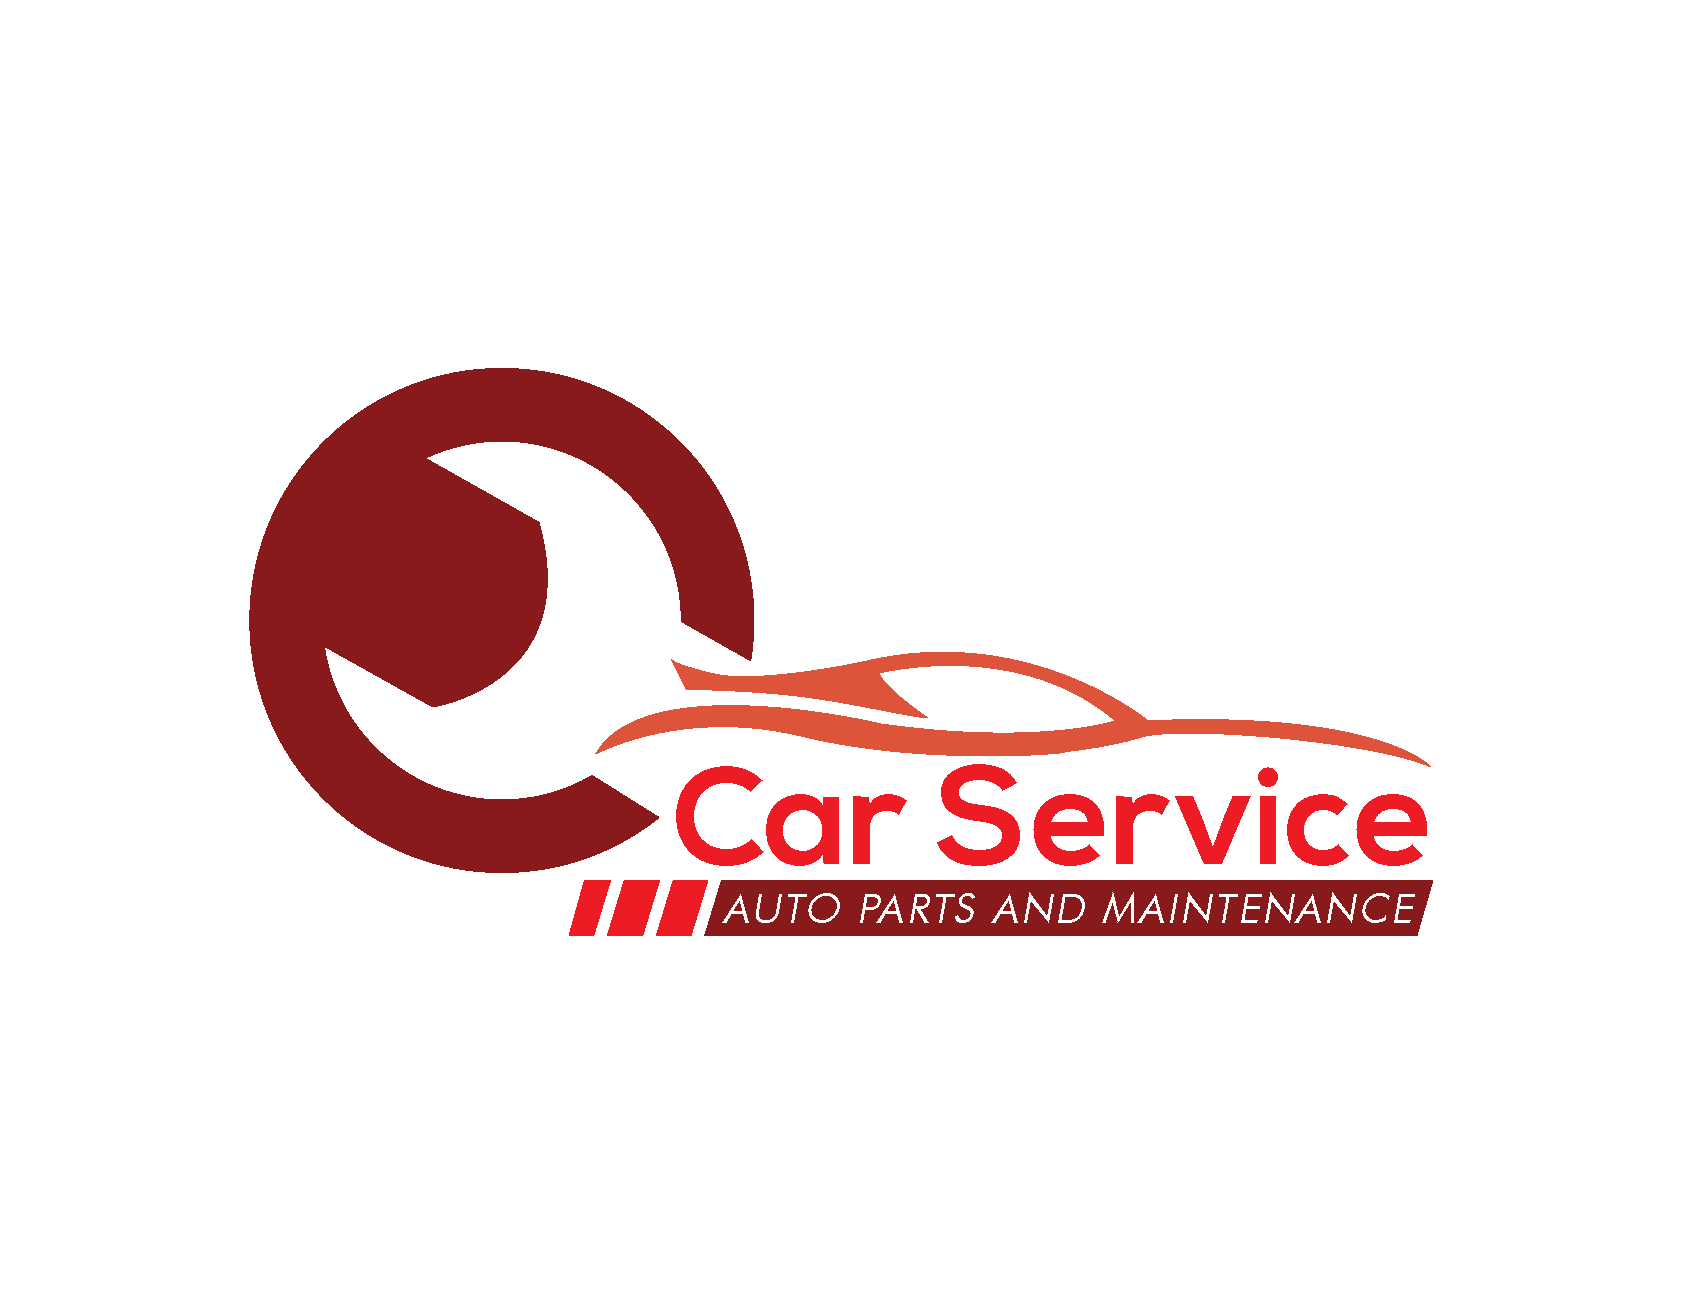 Car Service Logo Design by LogoSkill